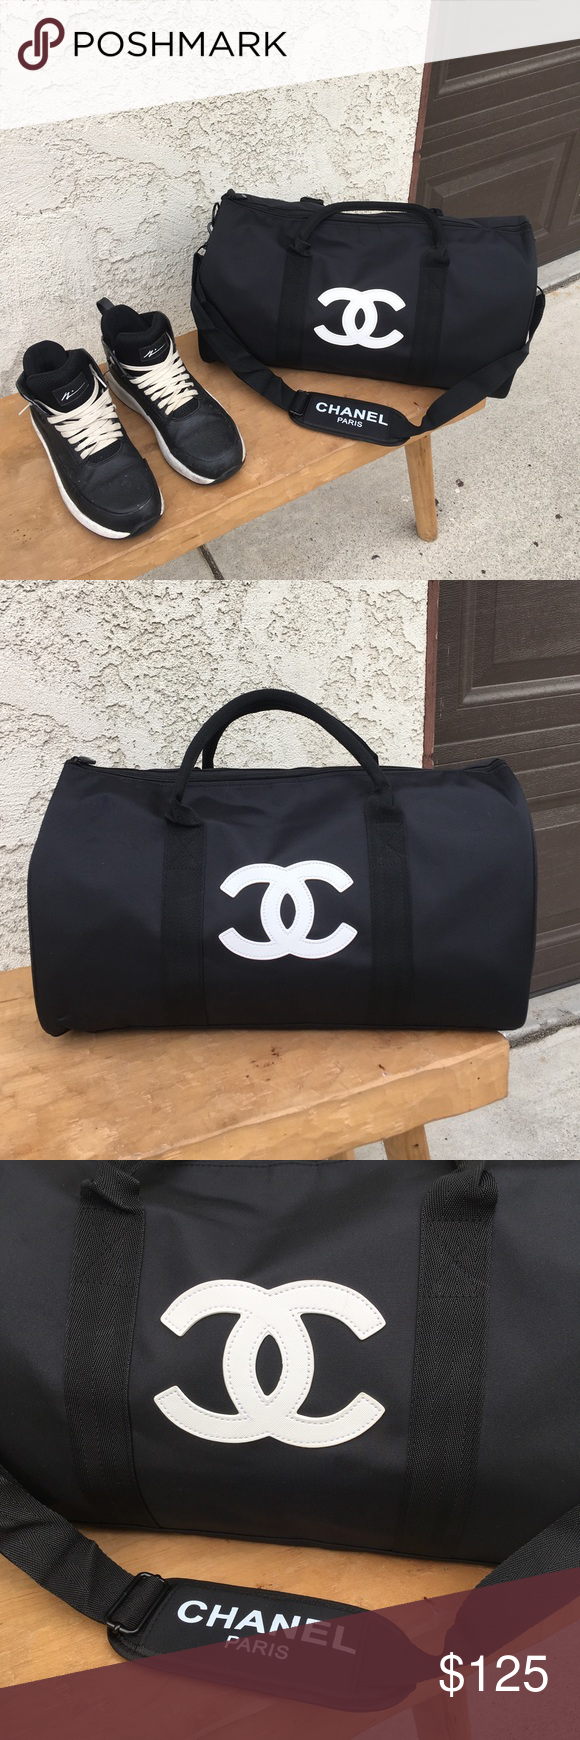 0c7687df4aa3 CHANEL MEN PERFUME VIP GIFT DUFFLE BAG GYM BAG Authentic new in plastic bag  It's a free gift with purchase men perfume of Chanel CHANEL Bags Travel Bags